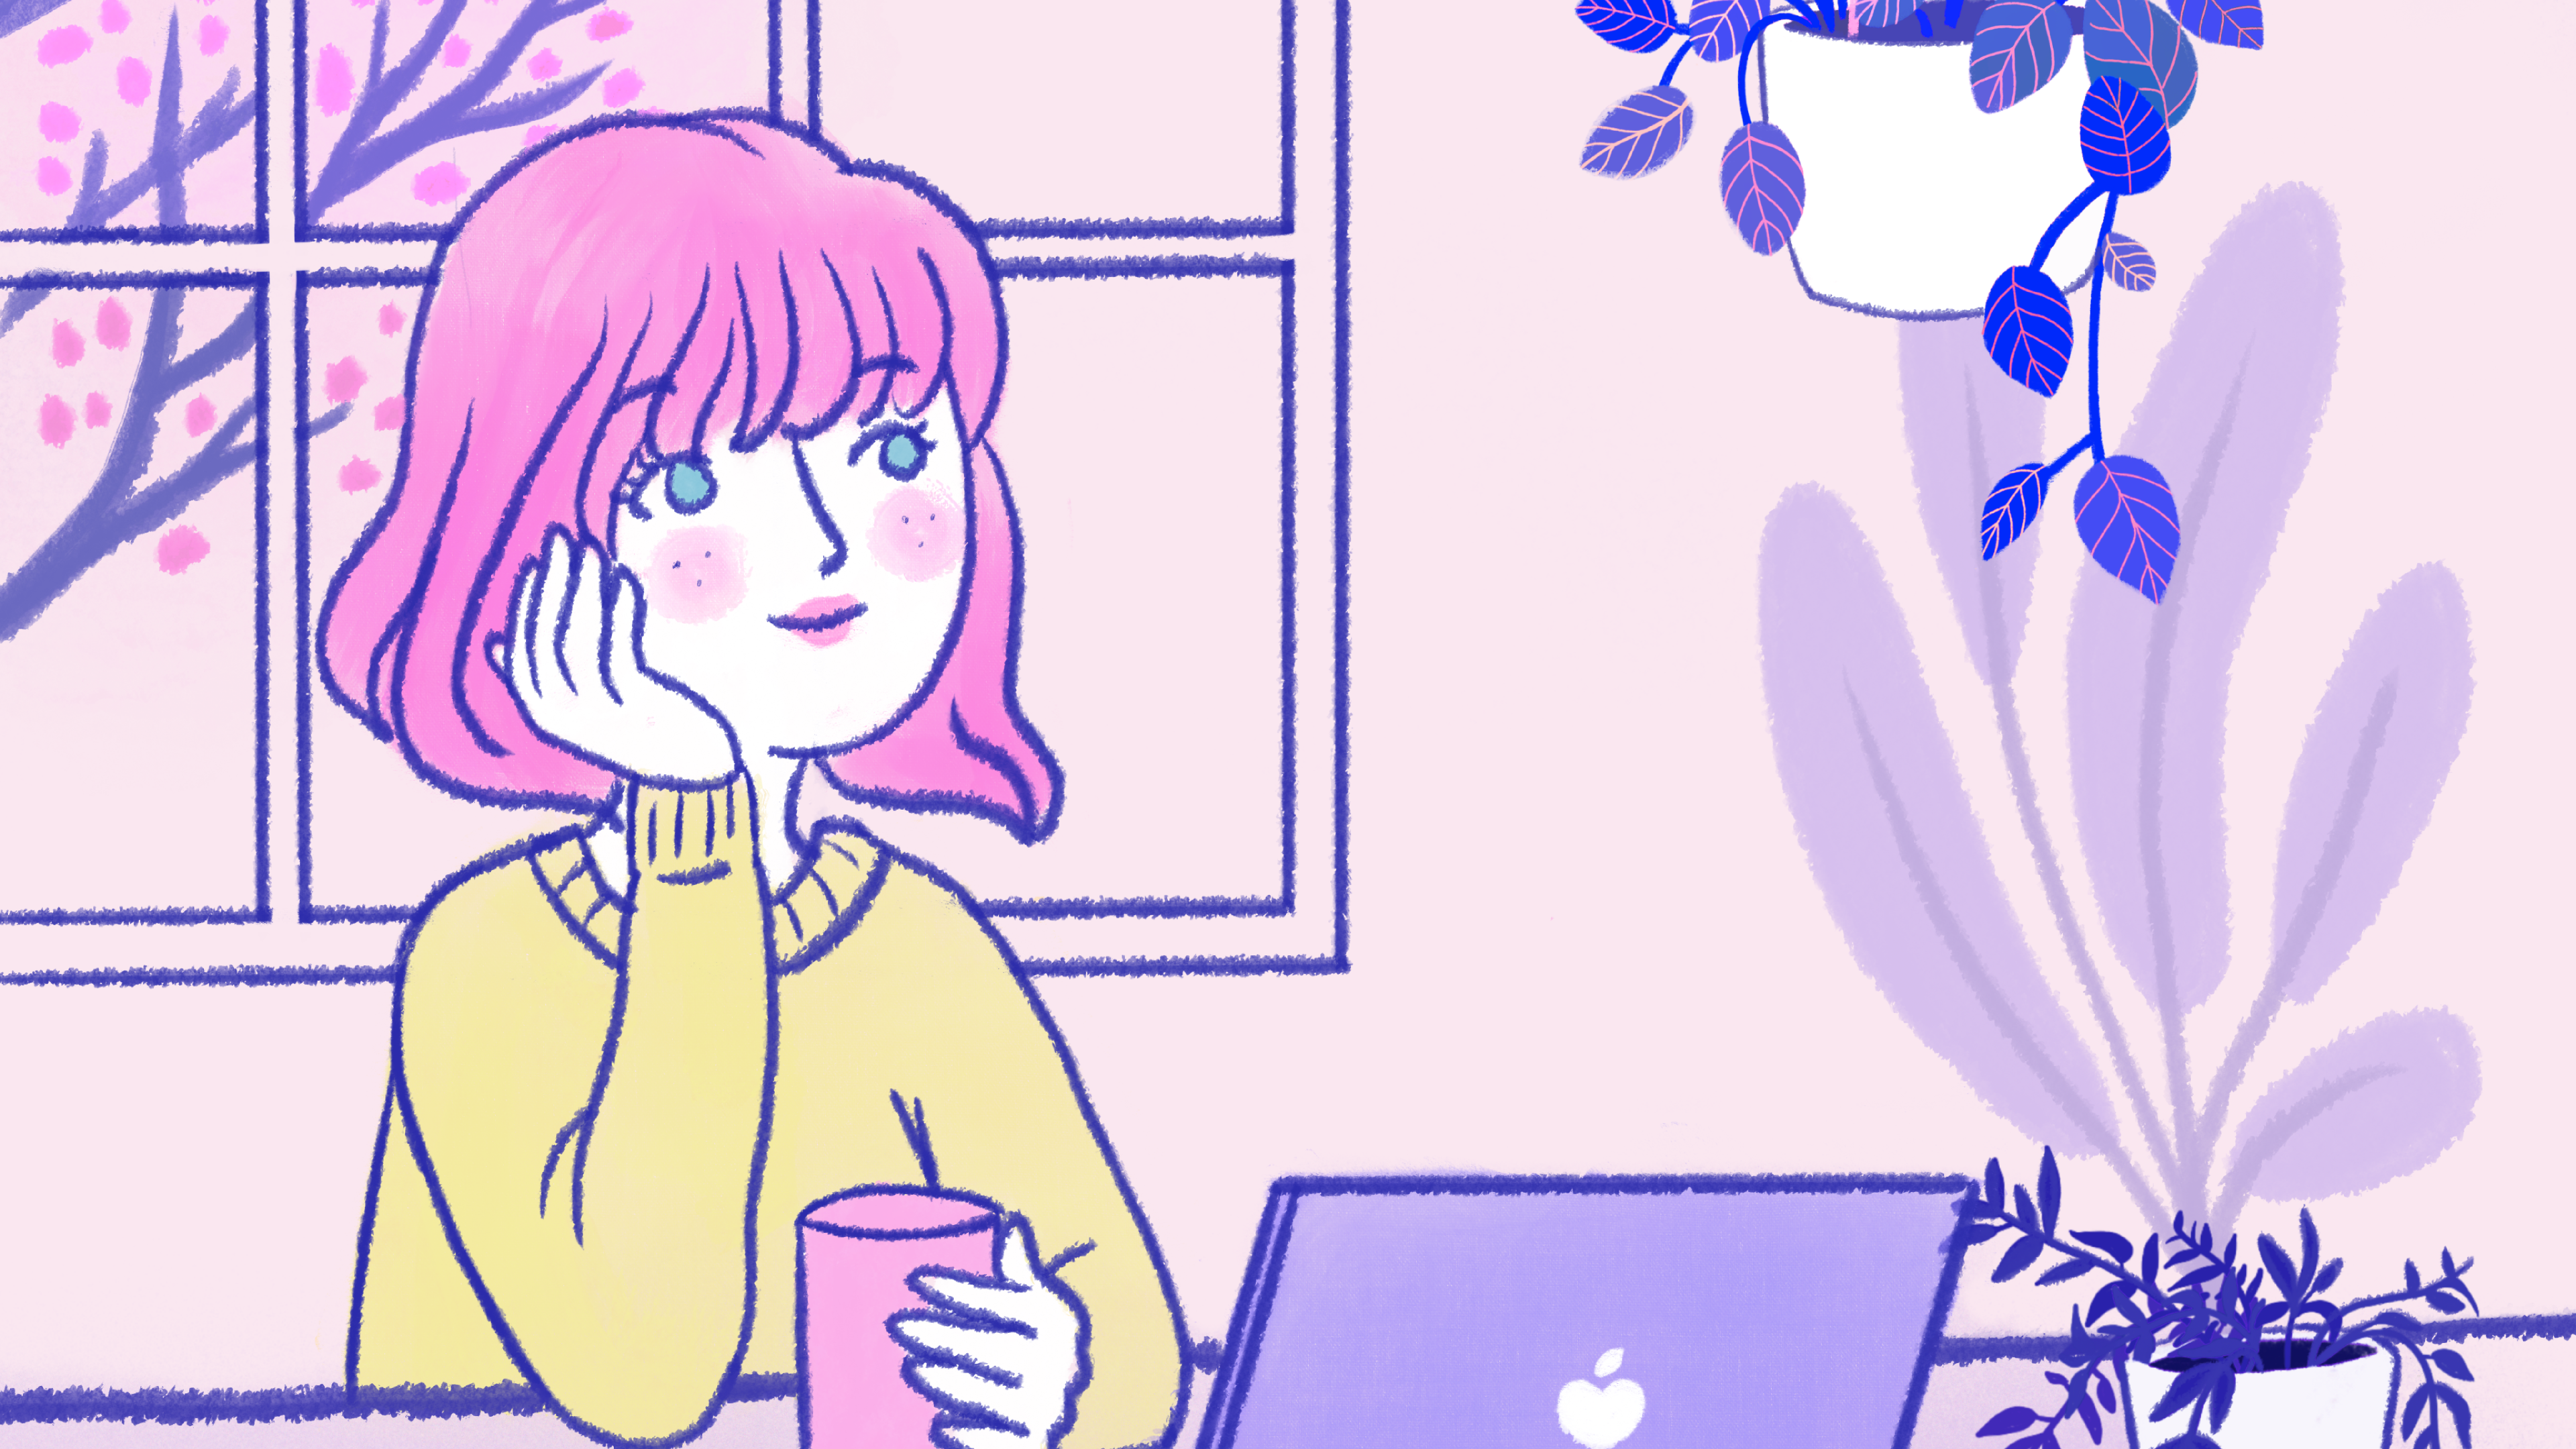 Drawing of a pink-haired person looking into the distance with a gentle smile, holding a cup, in front of an open laptop.